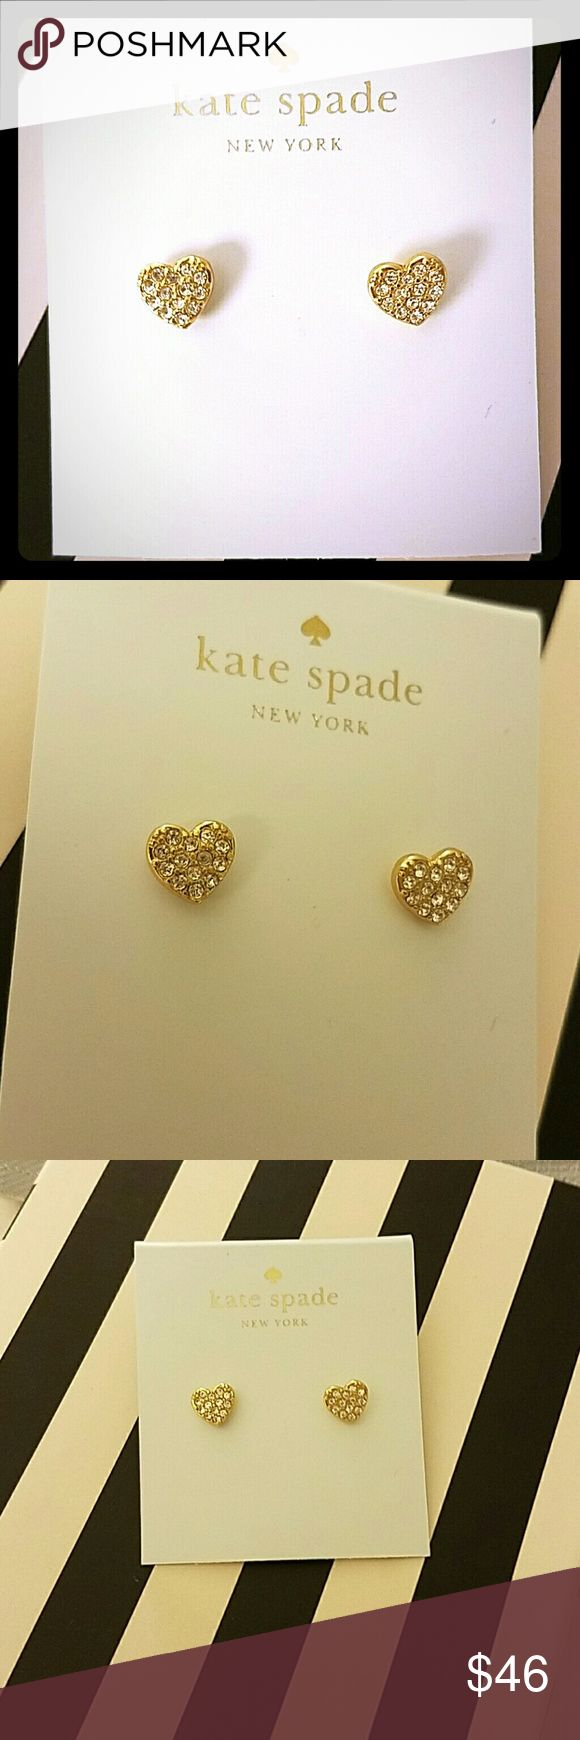 Kate Spade Gold Heart Earrings Brand new with tags and can also include KS gift bag. Not included but also selling silver earrings that are similar kate spade Jewelry Earrings